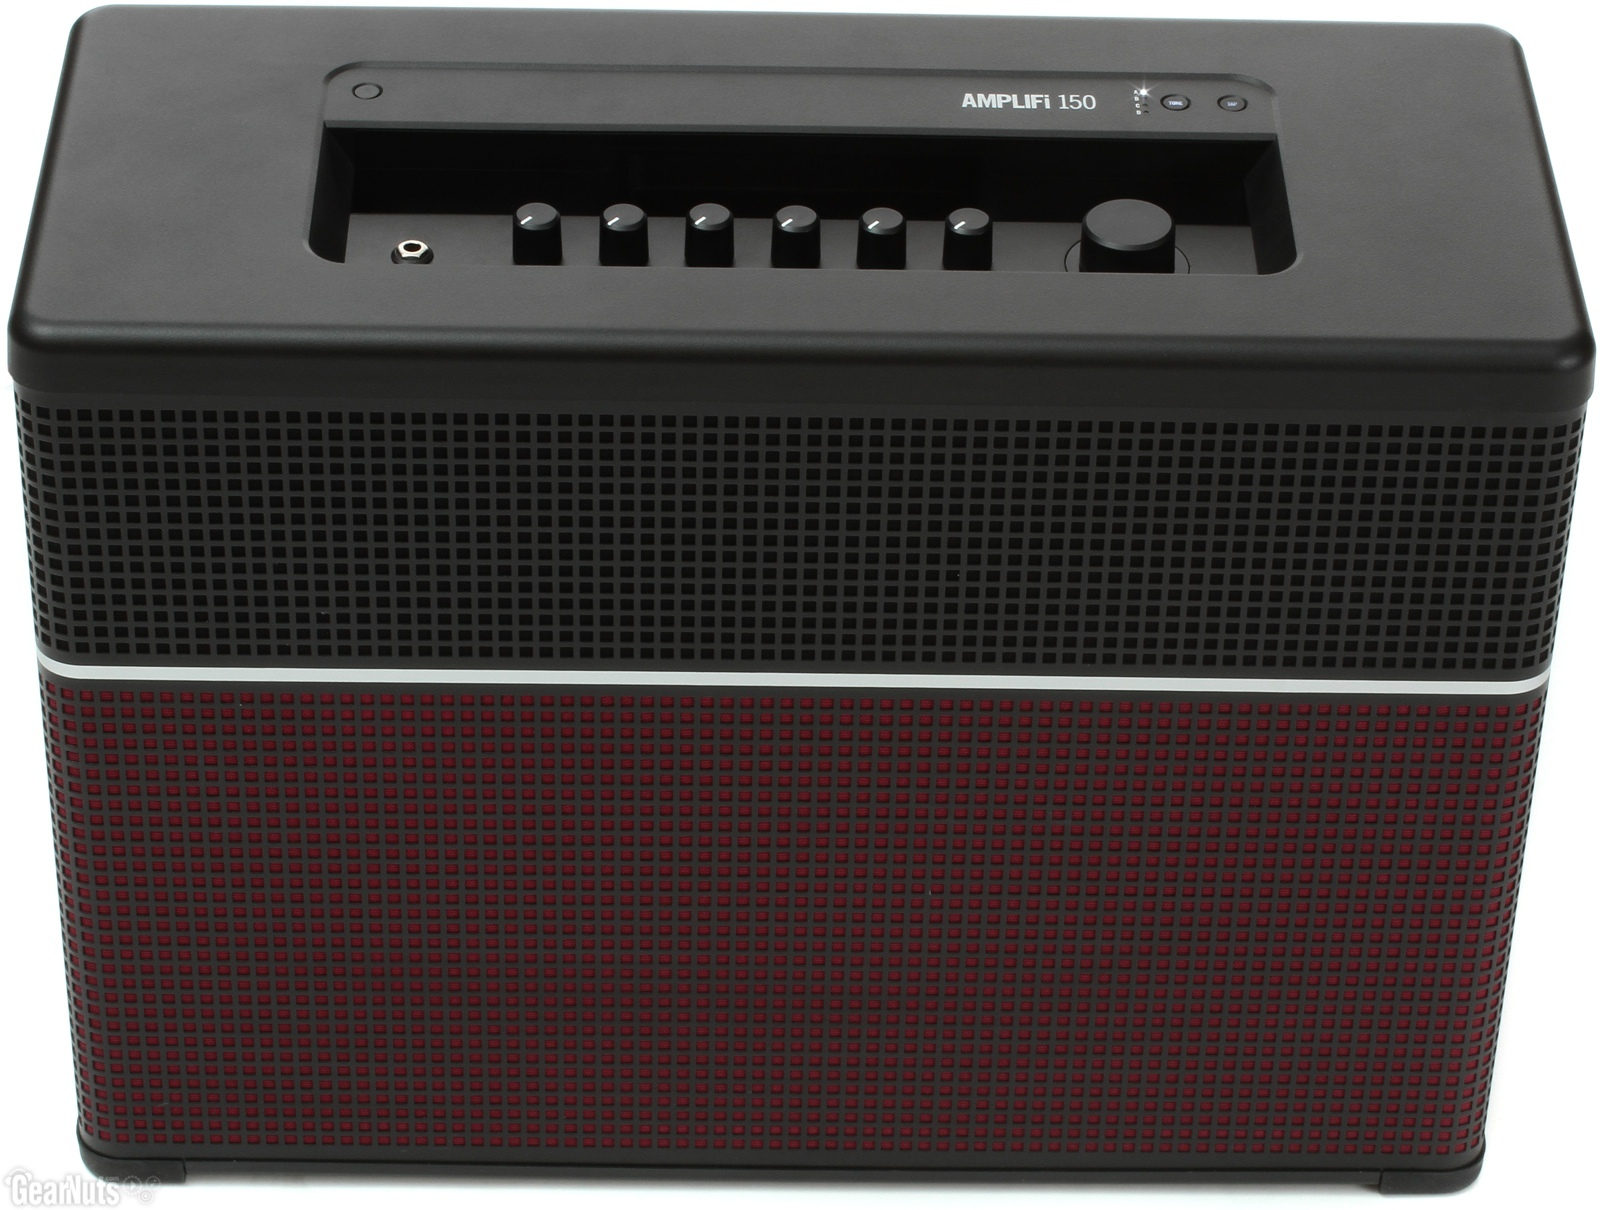 Line 6 AMPLIFi 150 ( Modeling Amp with Bluetooth Speaker System and iOS App Control )